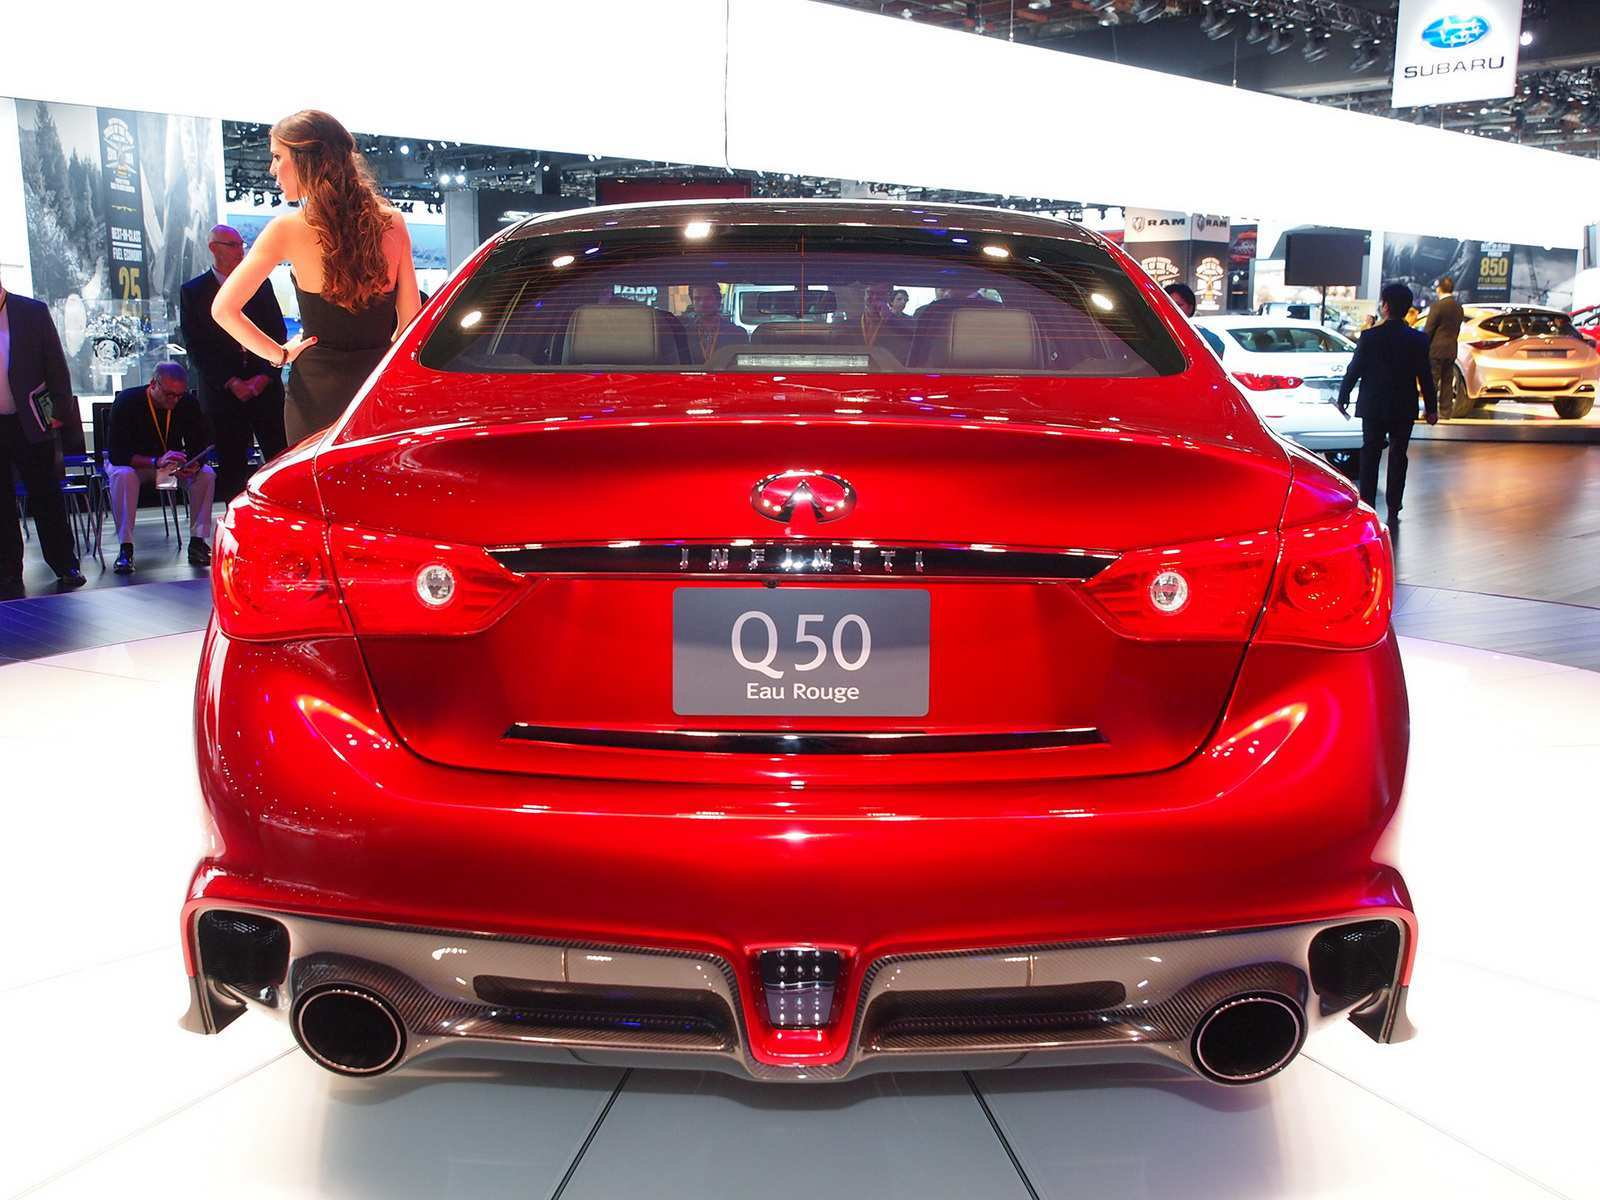 89 Best Review Q50 Eau Rouge Pricing Price and Review by Q50 Eau Rouge Pricing